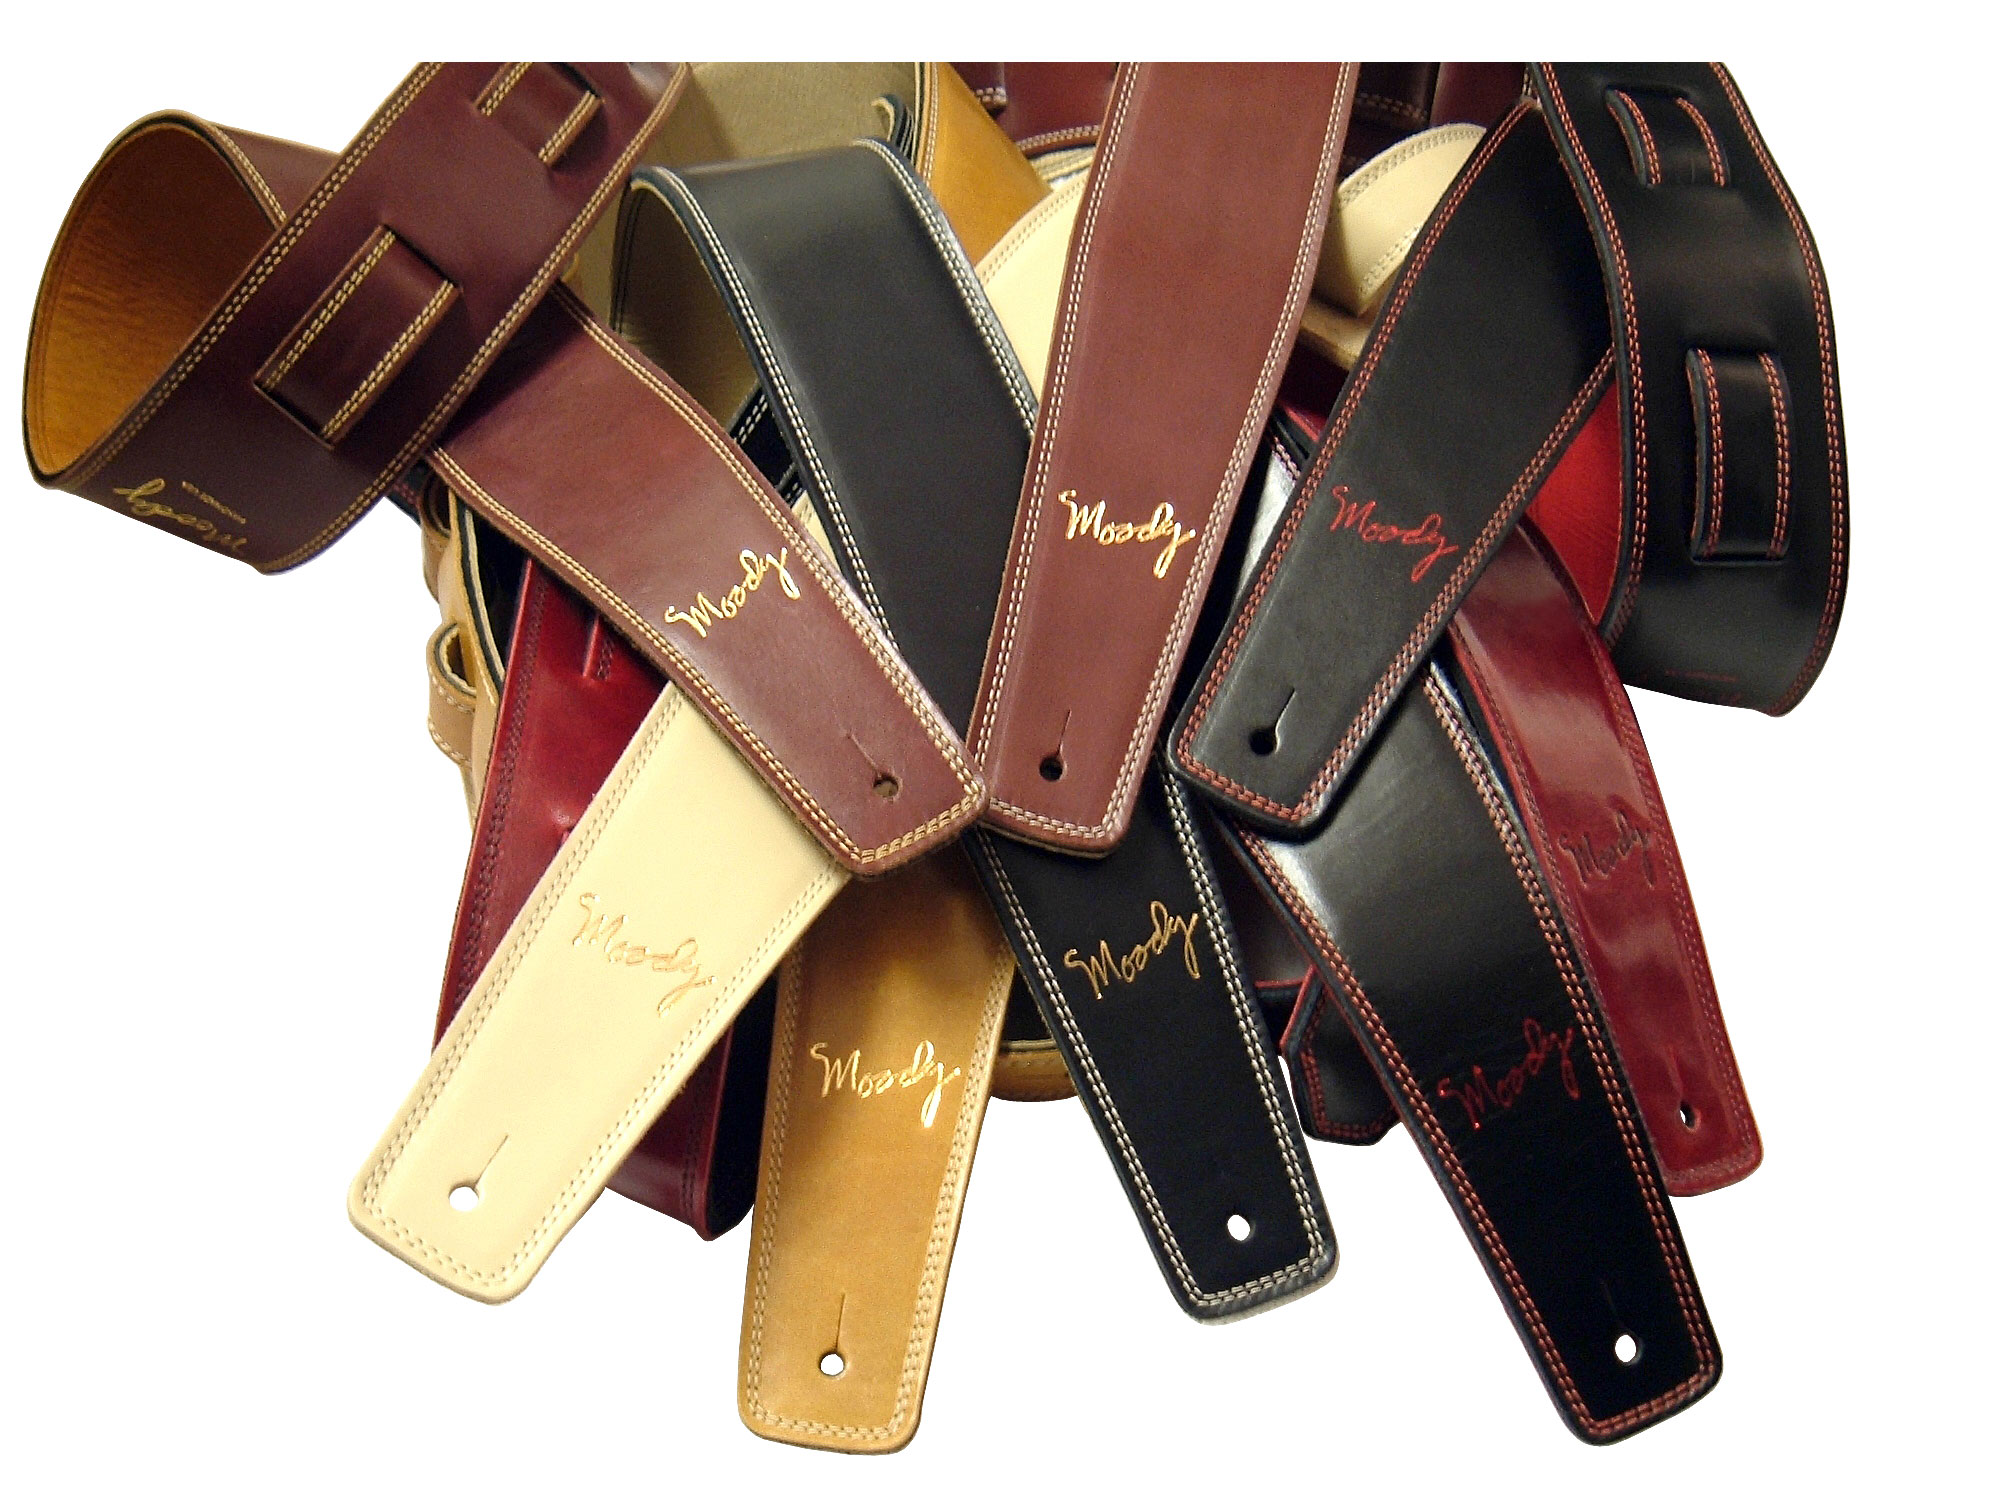 Moody Guitar & Bass Handmade Leather Straps